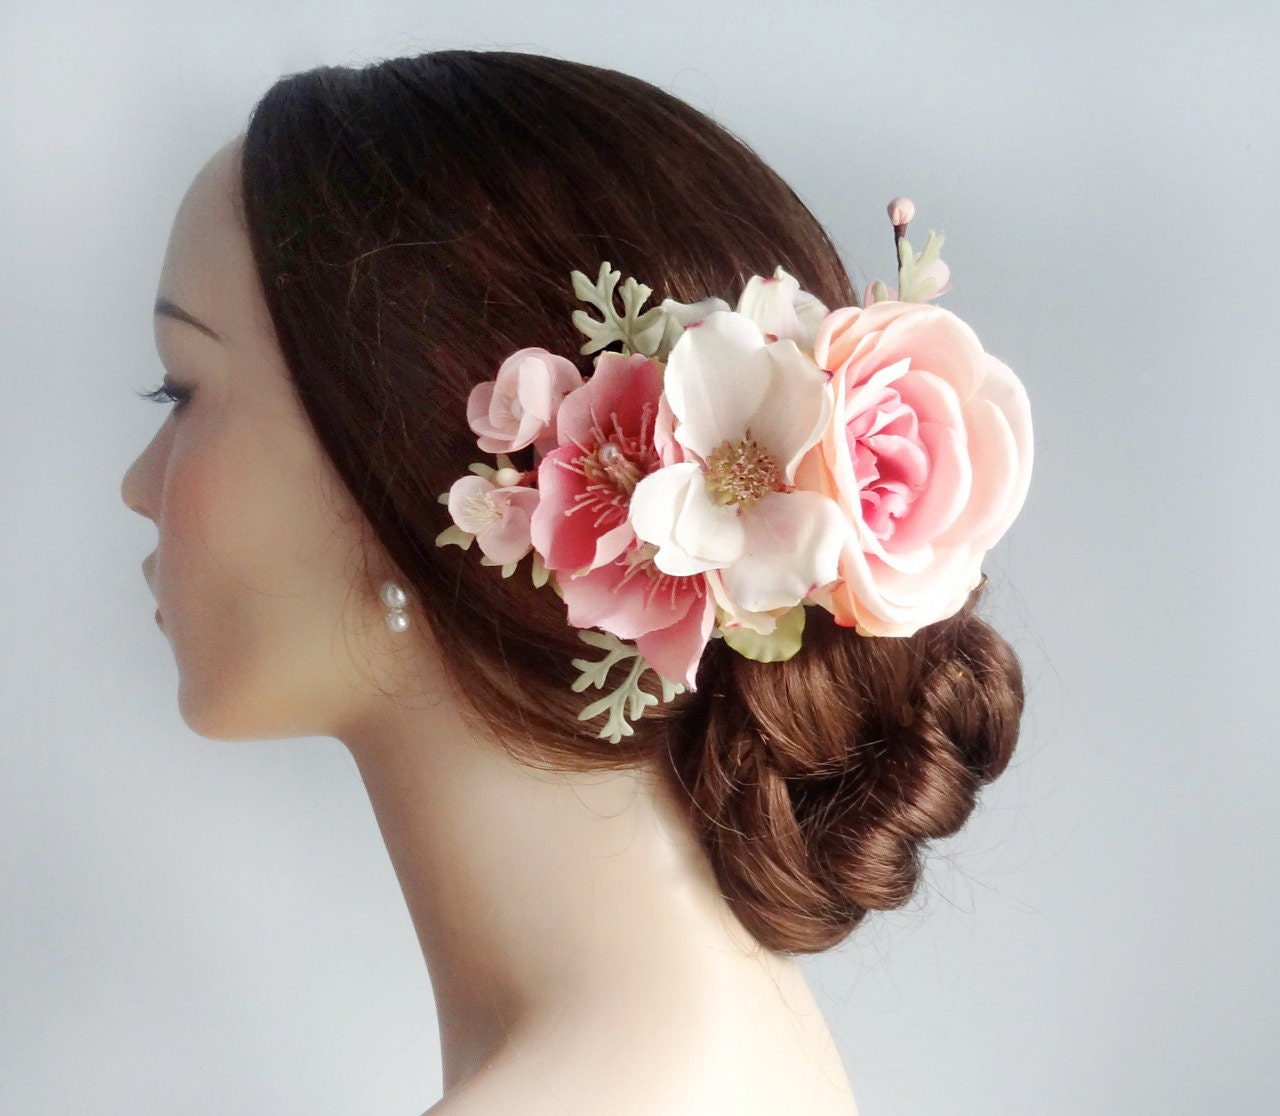 Flower Hair Pieces For Wedding: Bridal Flower Hair Clip Pink And Mint Green Wedding Hairpiece